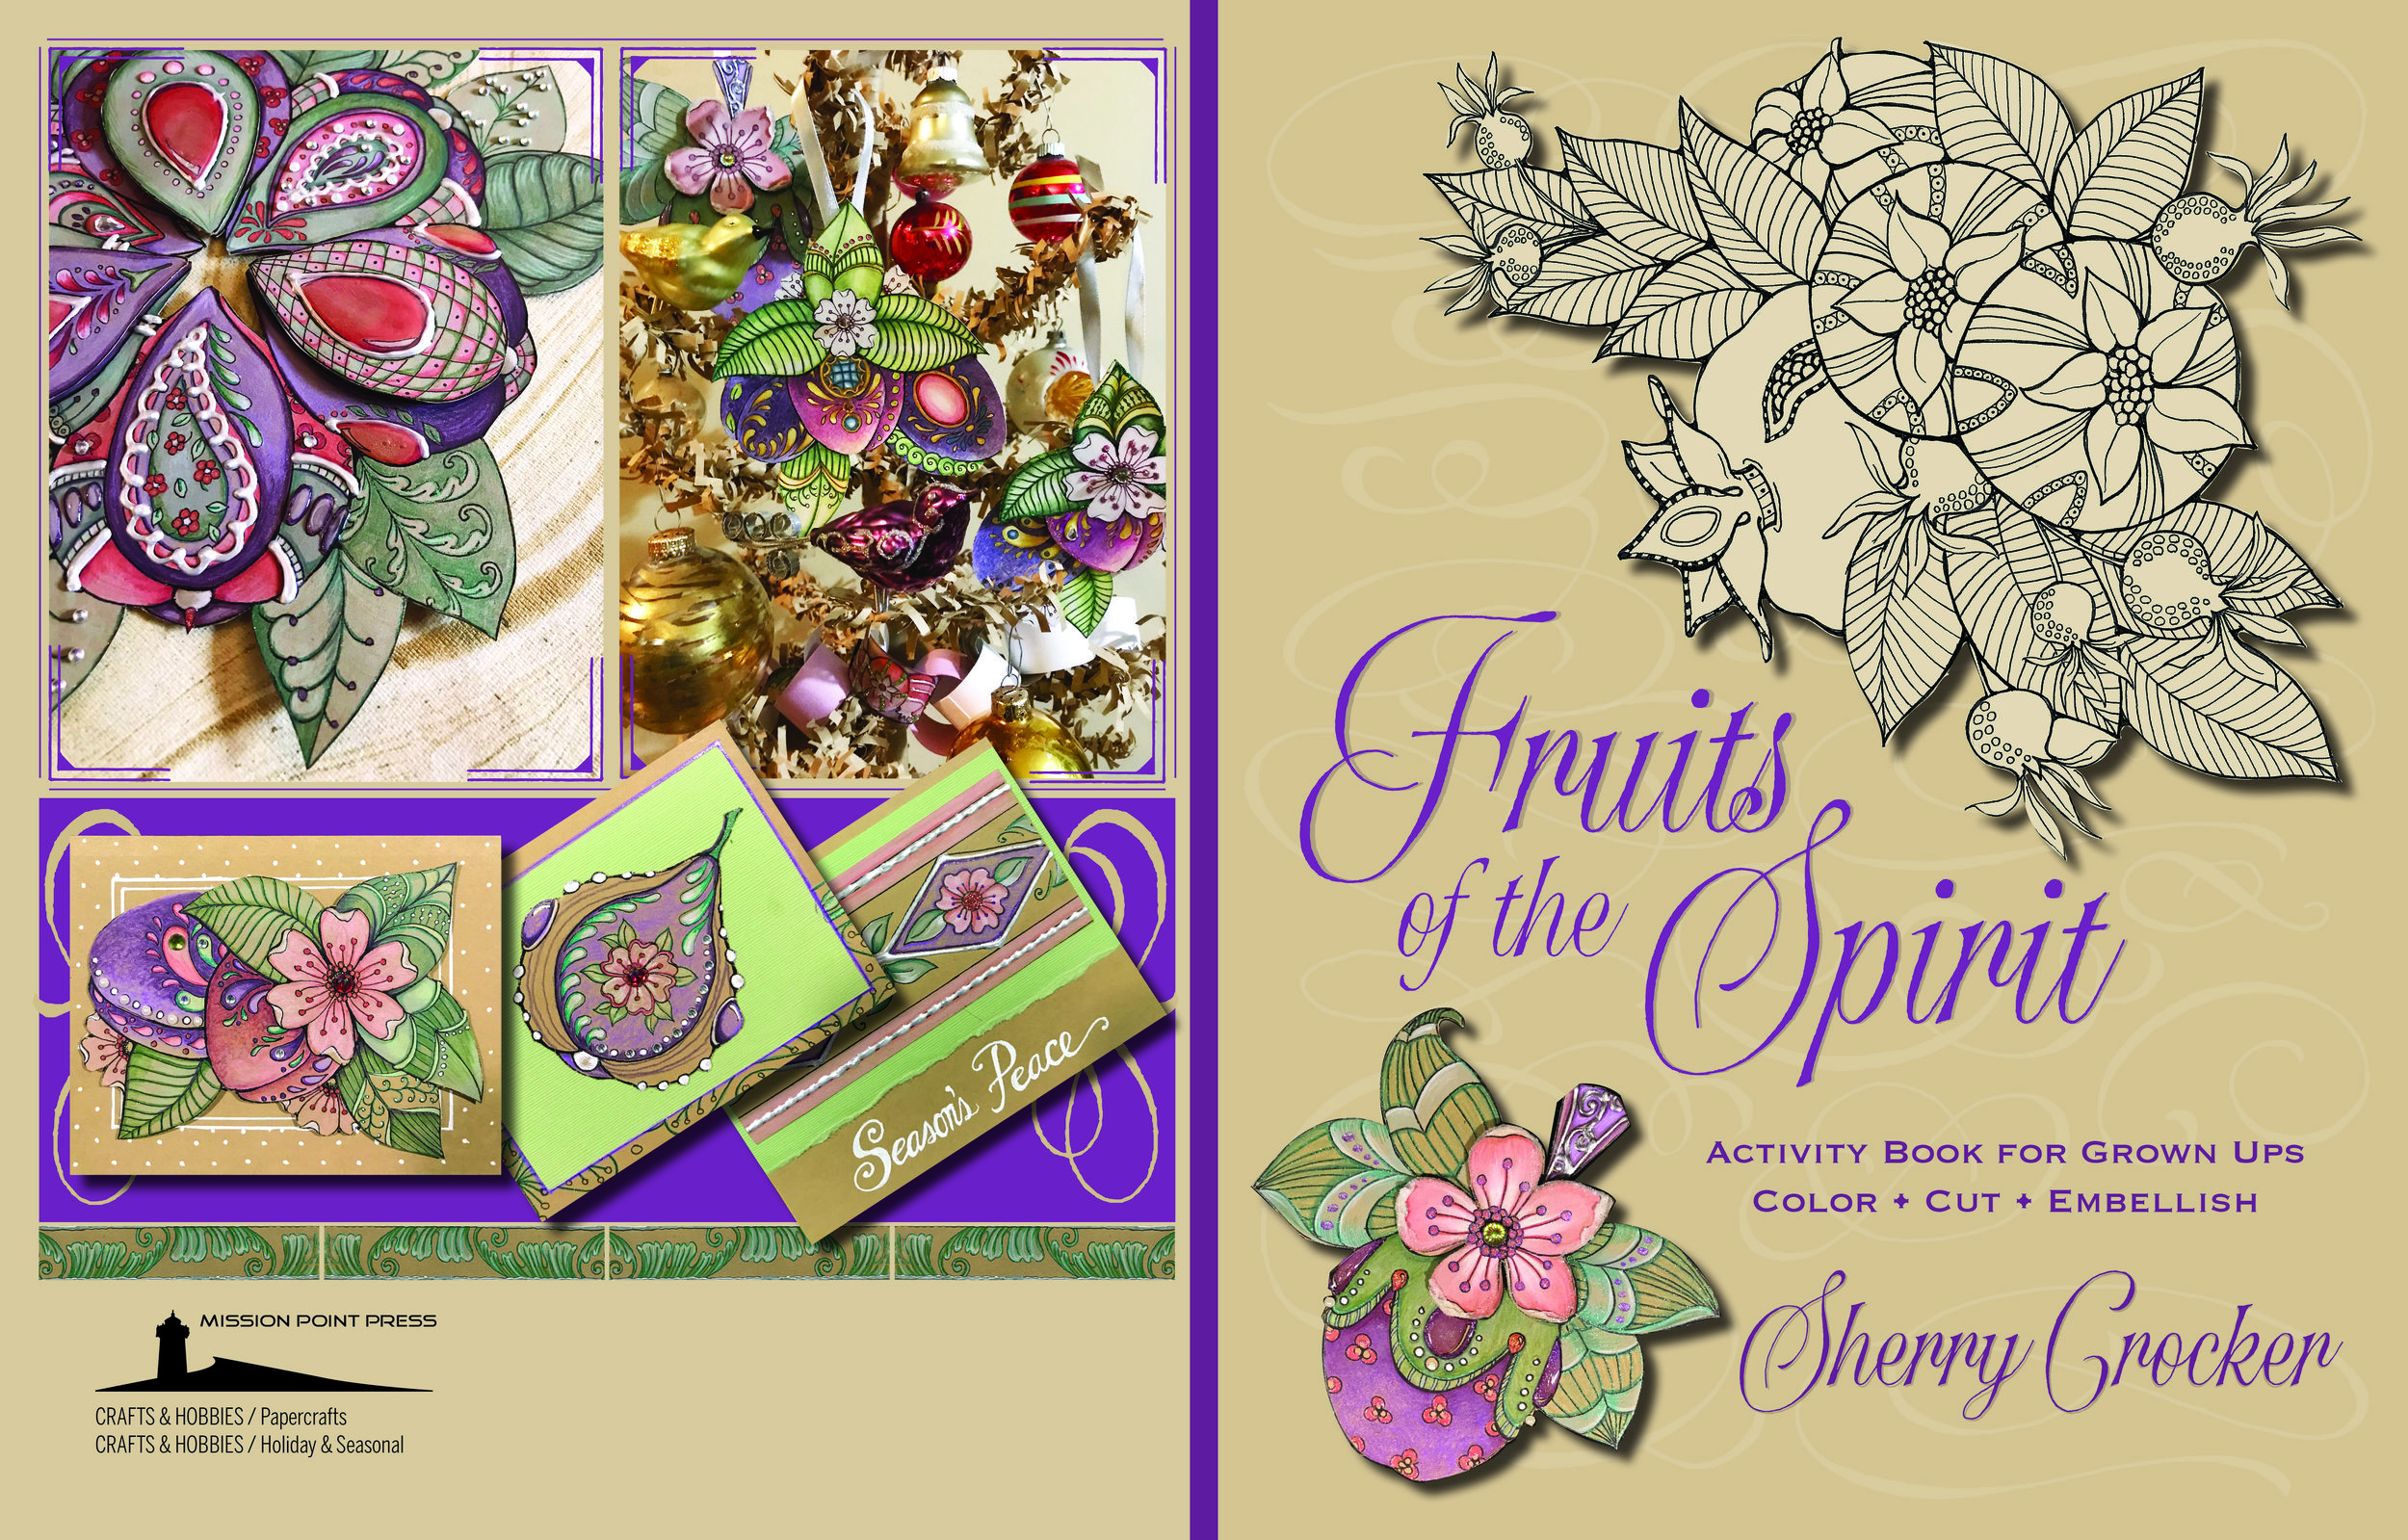 - Beautiful designs for your holiday decorating.More about the bookBuy the book on Amazon